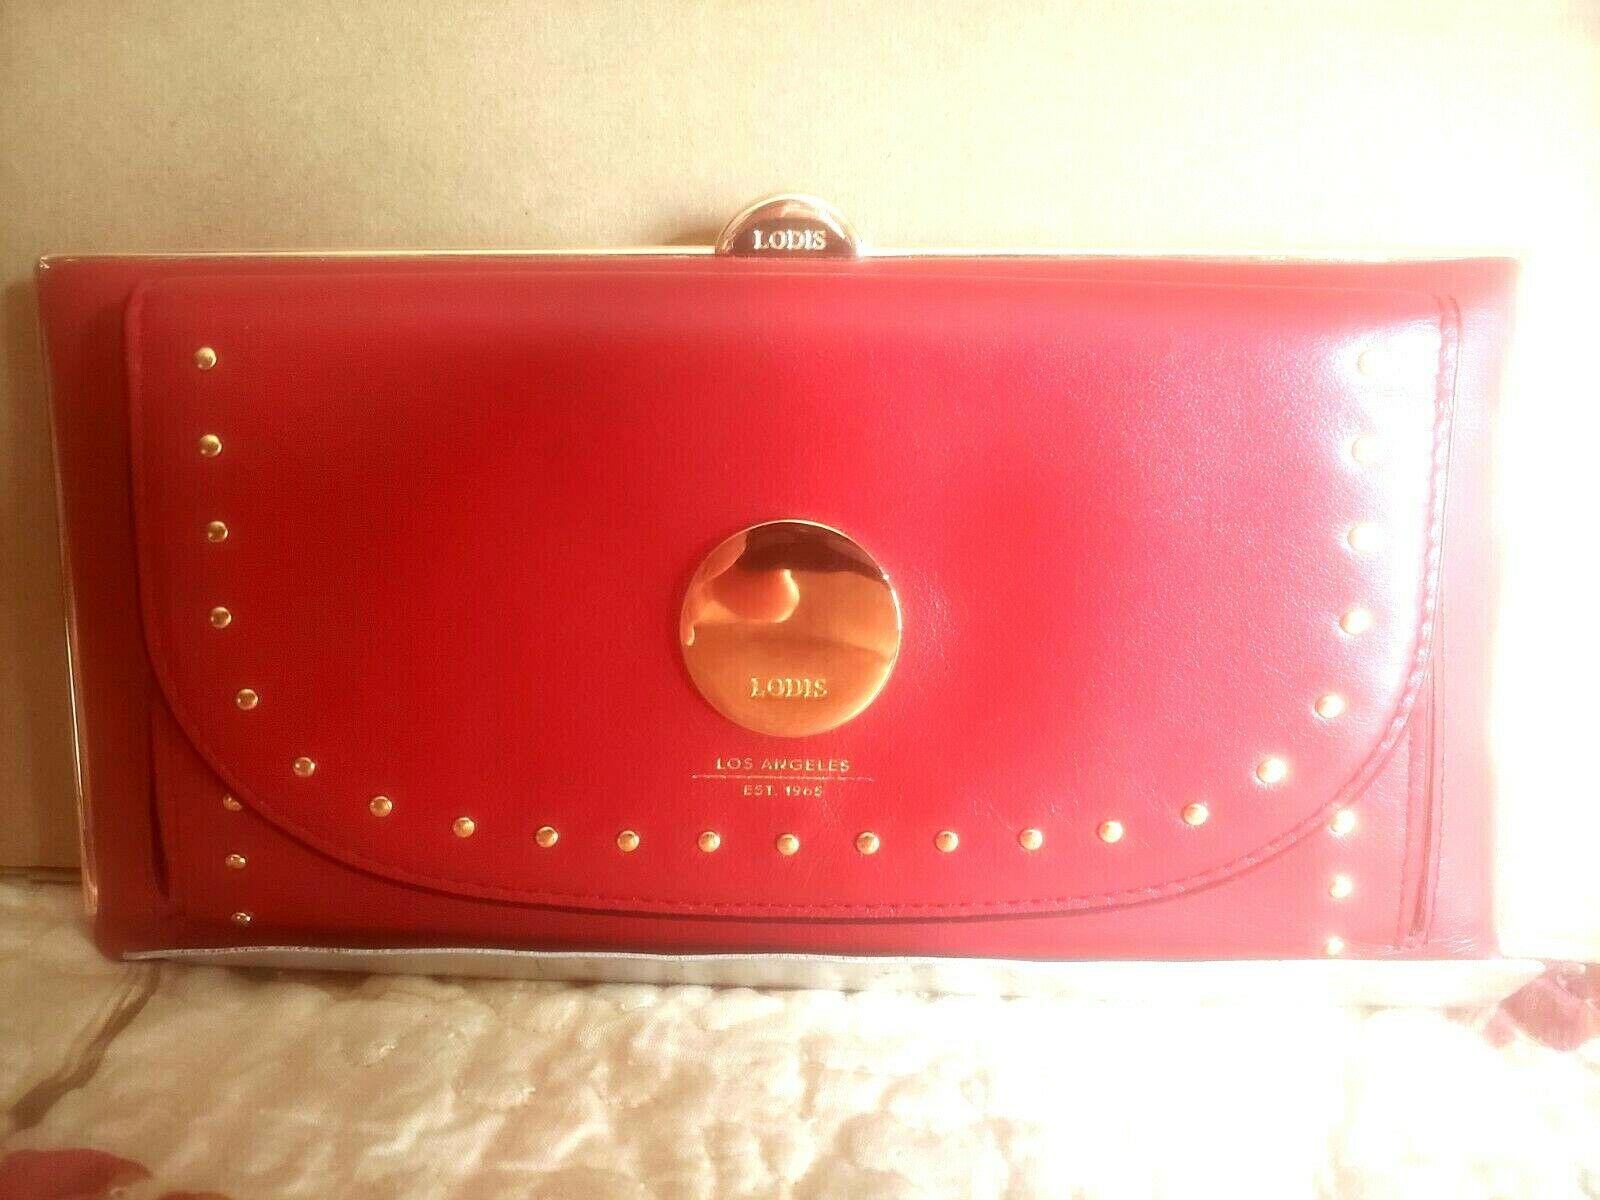 LODIS Ladies Red Italian Leather Wallet - New with Tags & Original Box!